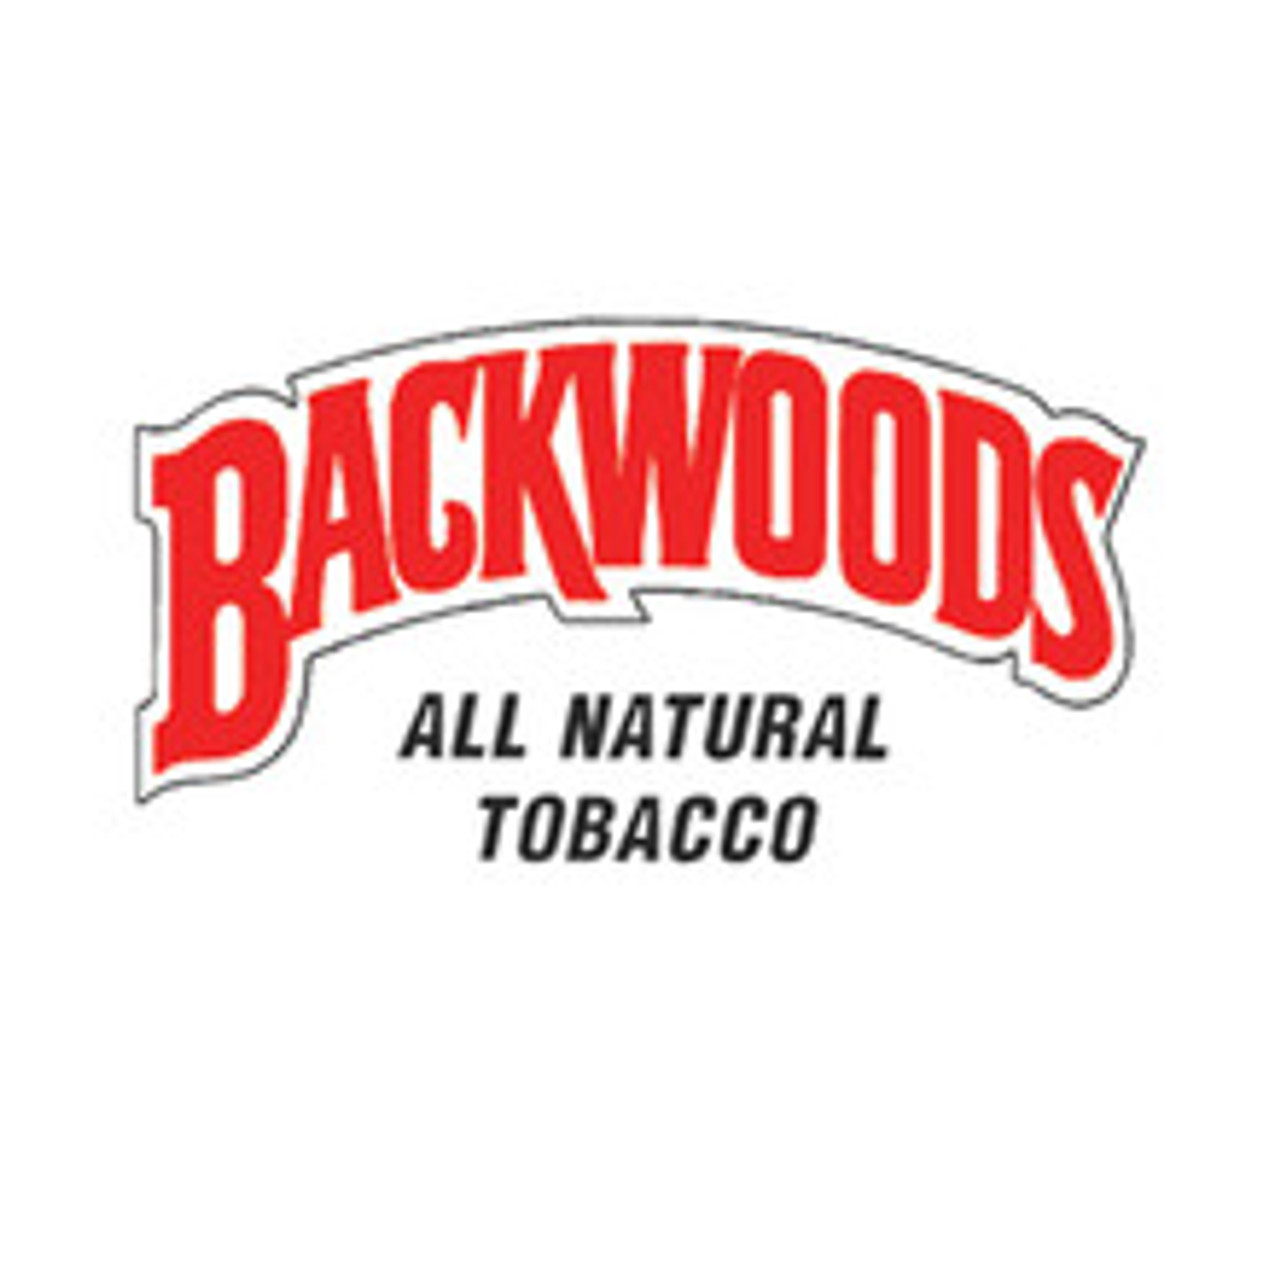 Backwoods Original Wild and Mild Cigars (8 Packs of 5) - Maduro